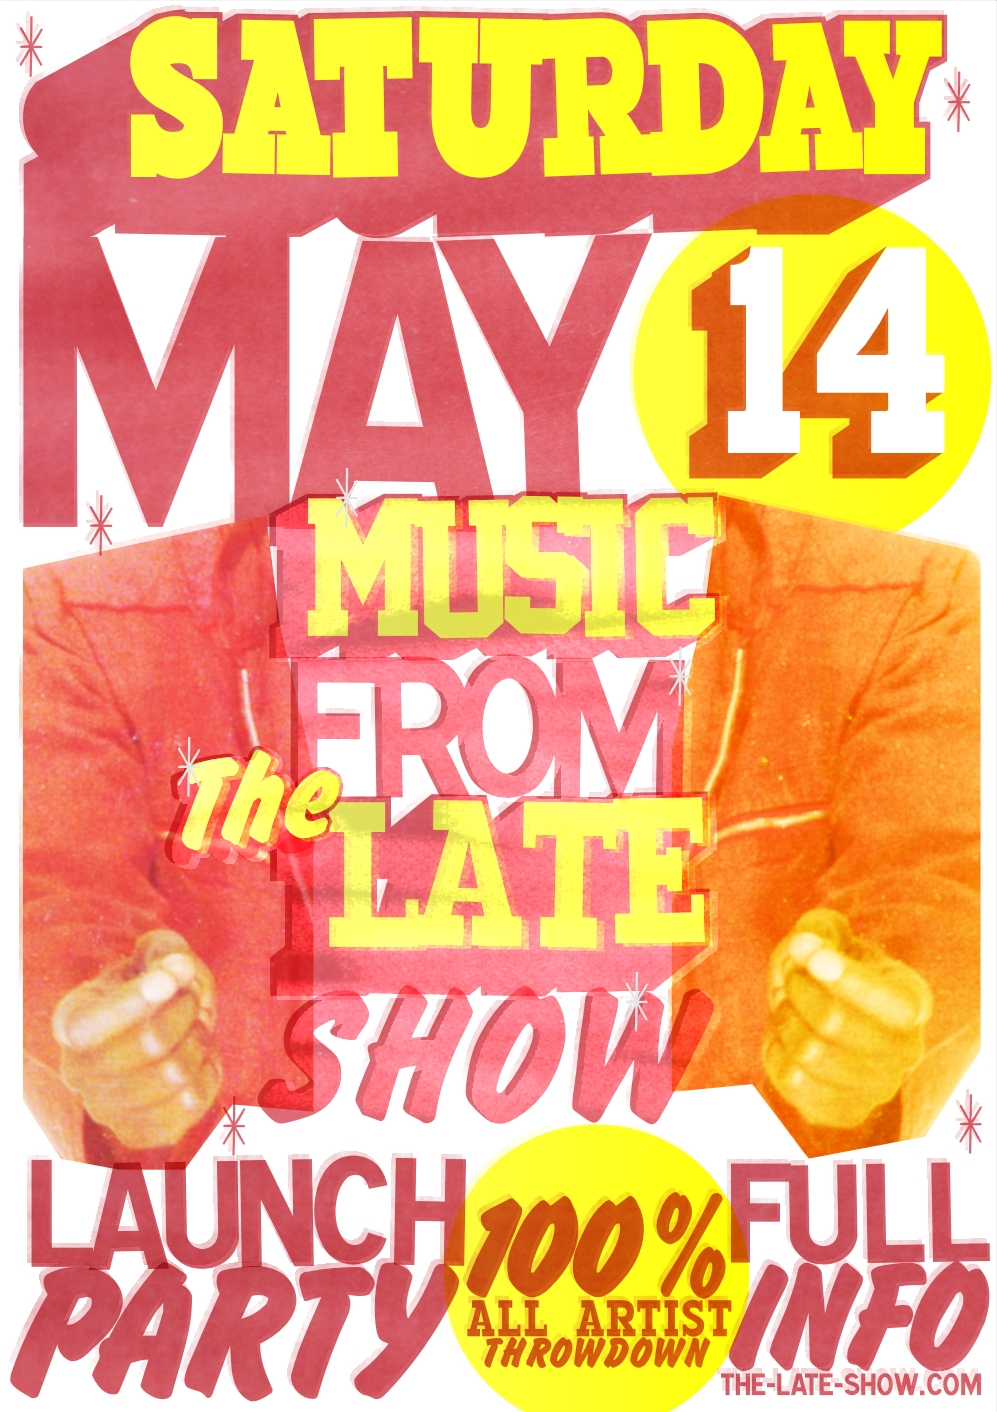 Music From The Late Show - Launch Party - May 14th 2011